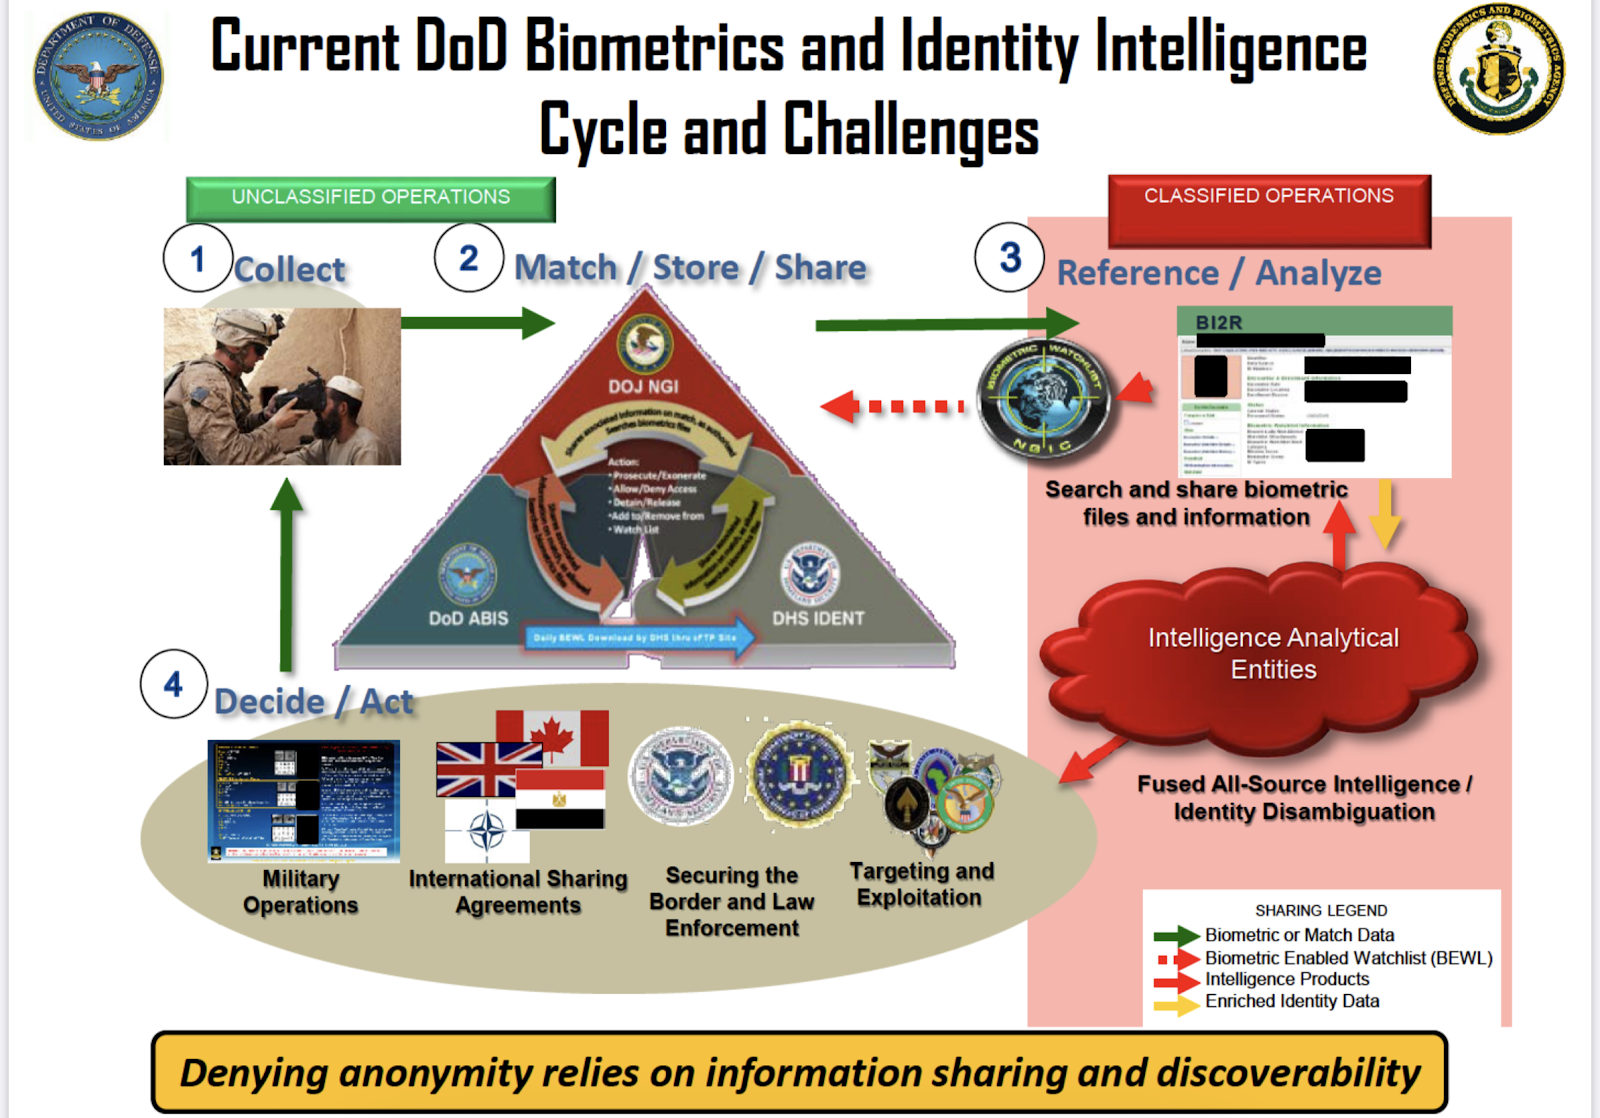 Presentation slides from Glenn Krizay, director of the Defense Forensics and Biometrics Agency. June 2019. Presentation in full below.